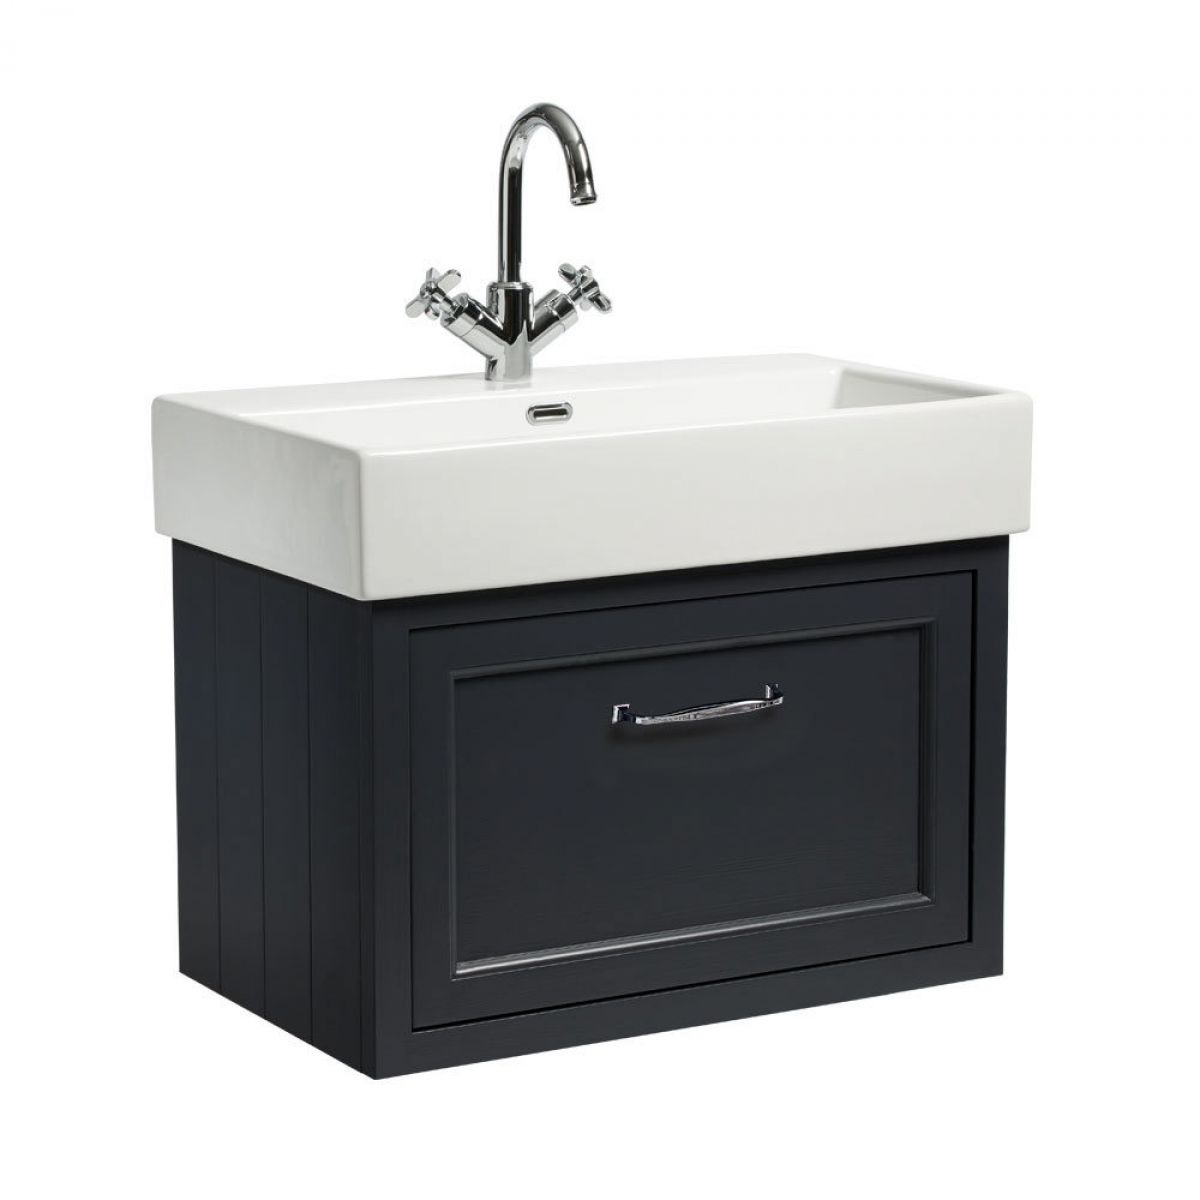 Roper rhodes hampton 700mm wall mounted vanity unit uk for Bathroom furniture 700mm